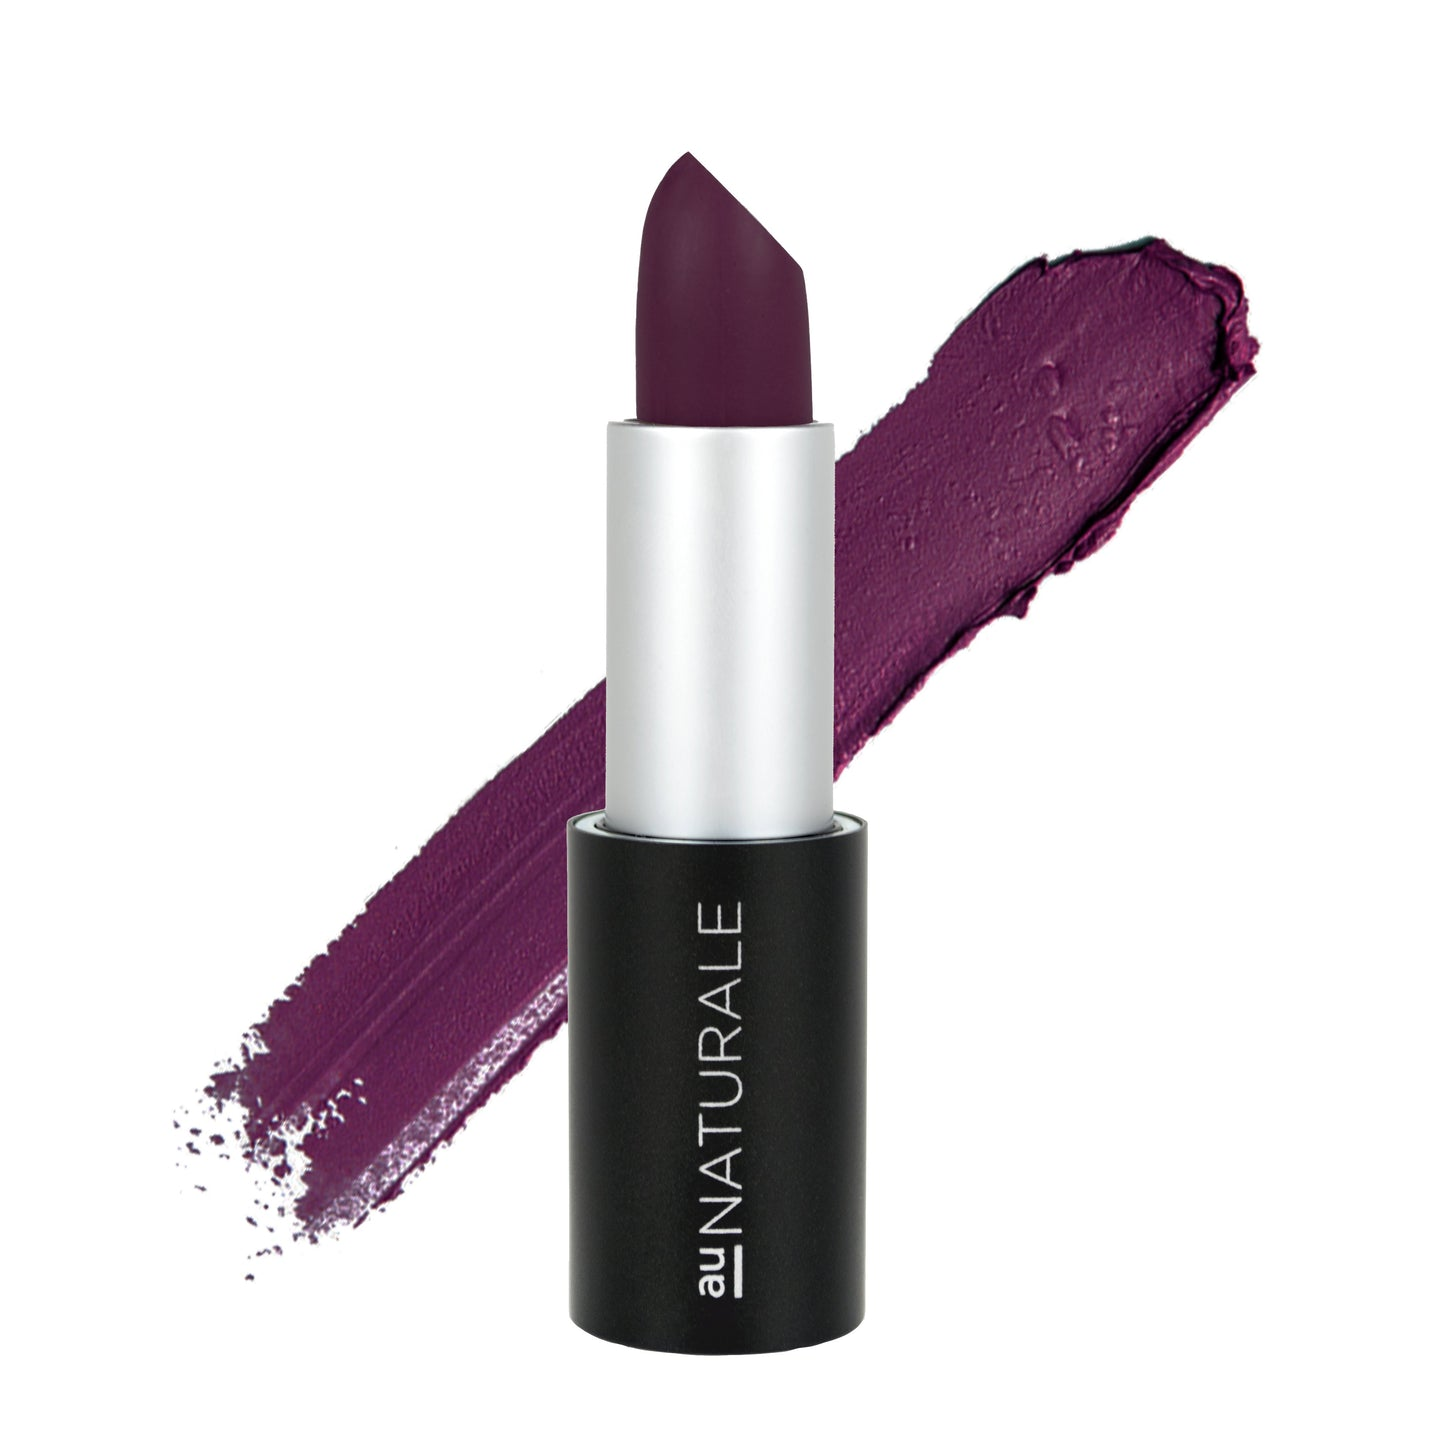 Shop Eternity Lipstick in Elsa Luisa by Au Naturale Cosmetics - Lets make it a trend #explorebeautiful lips and lipsticks